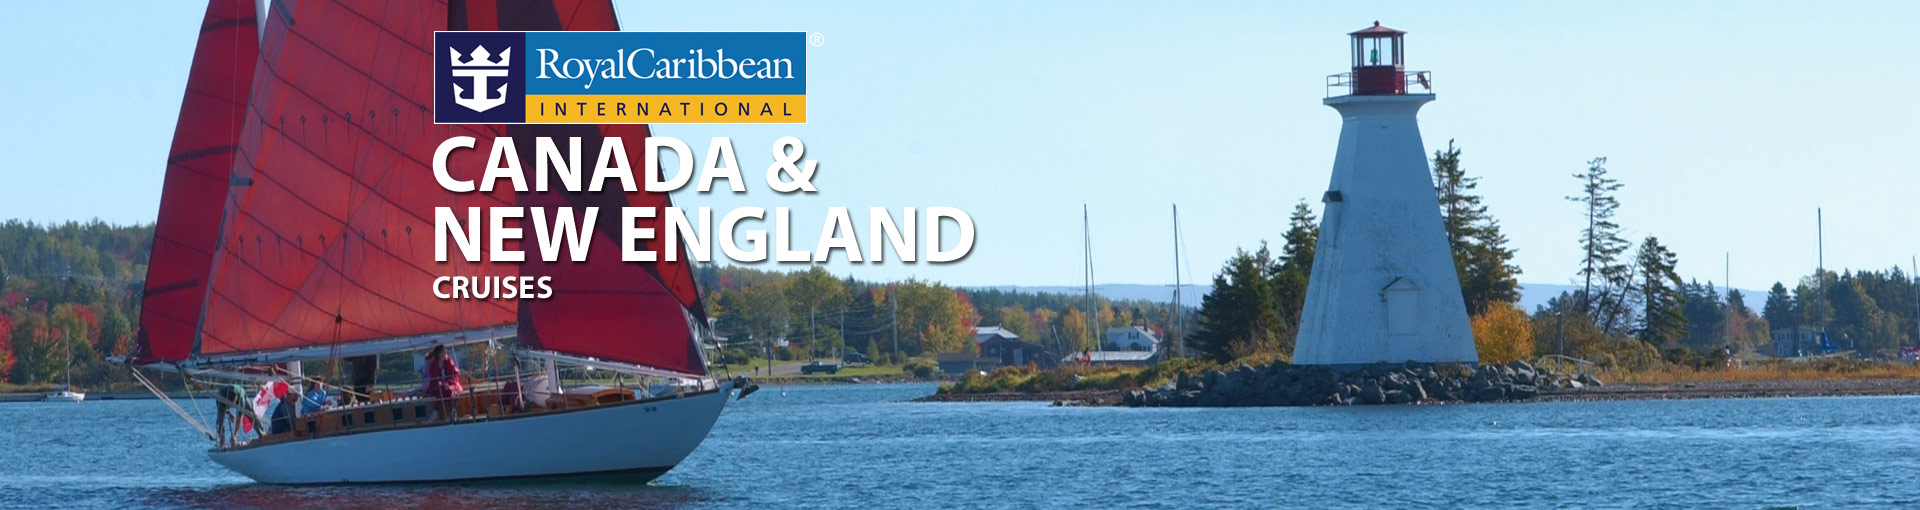 Royal Caribbean Canada and New England